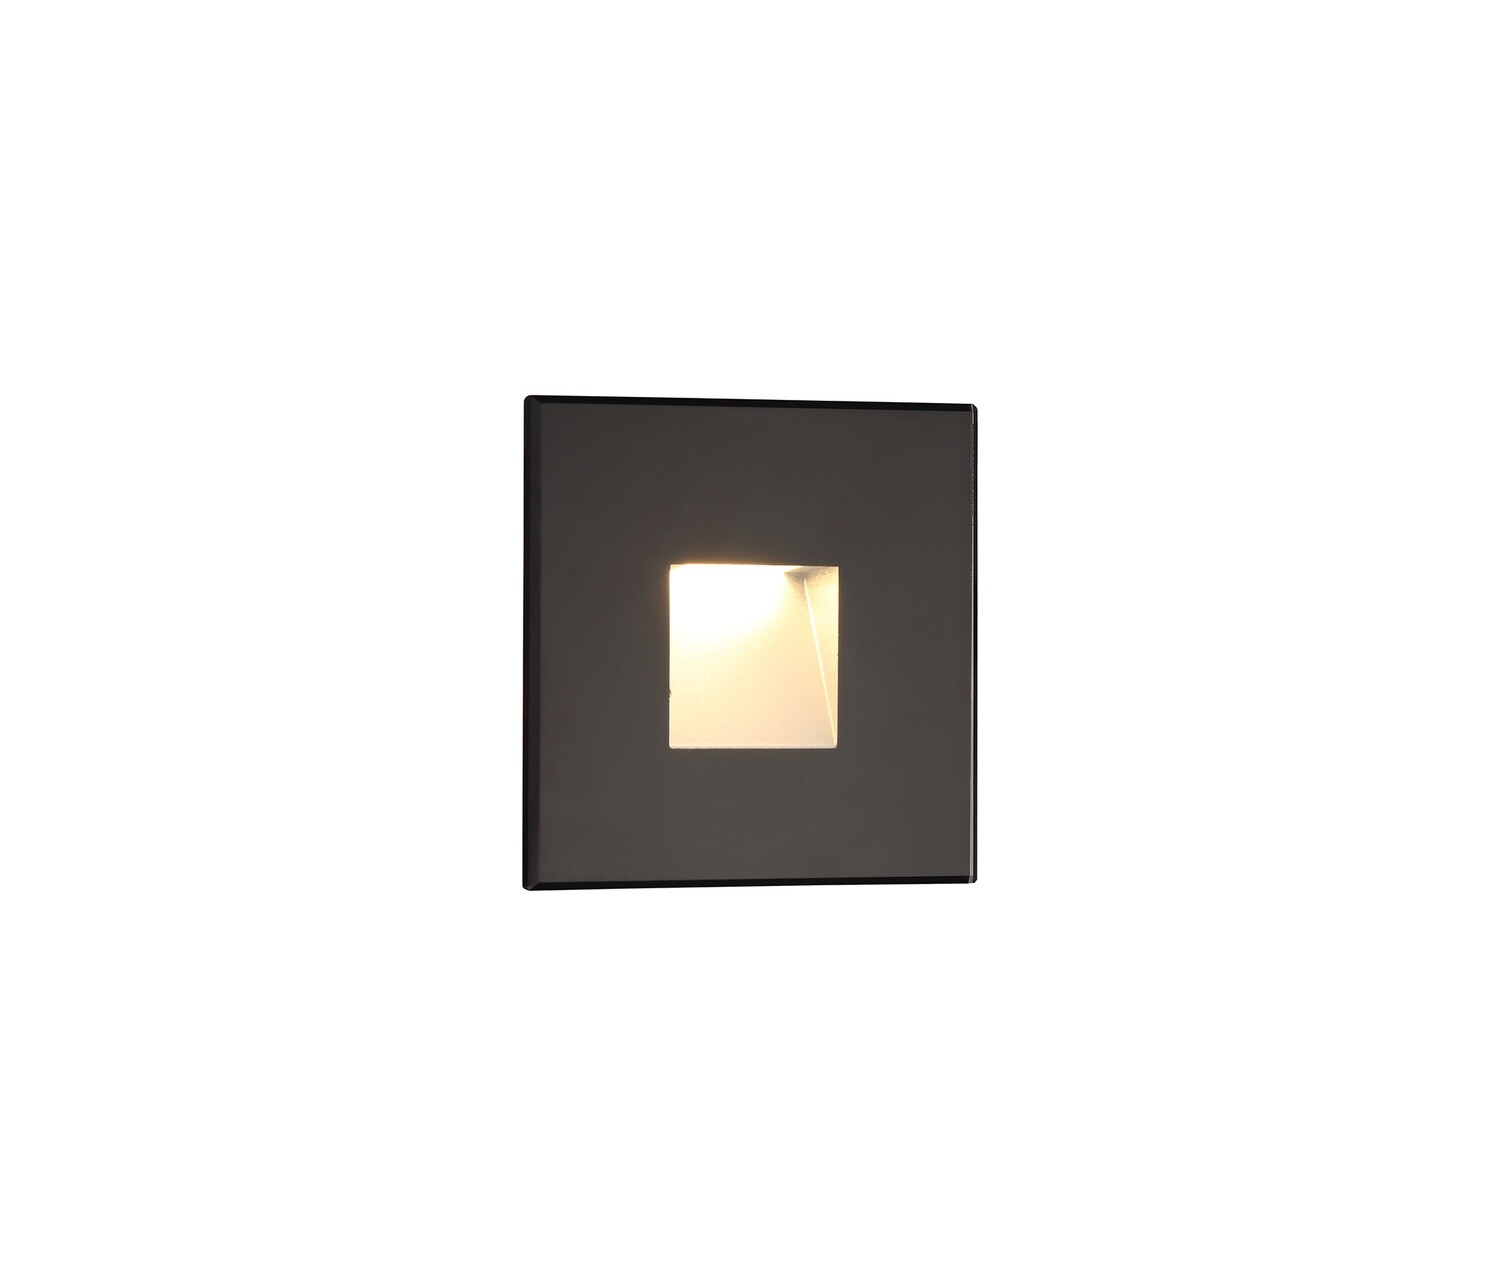 Slava Recessed Square Wall Lamp, 1 x 1.8W LED, 3000K, 70lm, IP65, Black